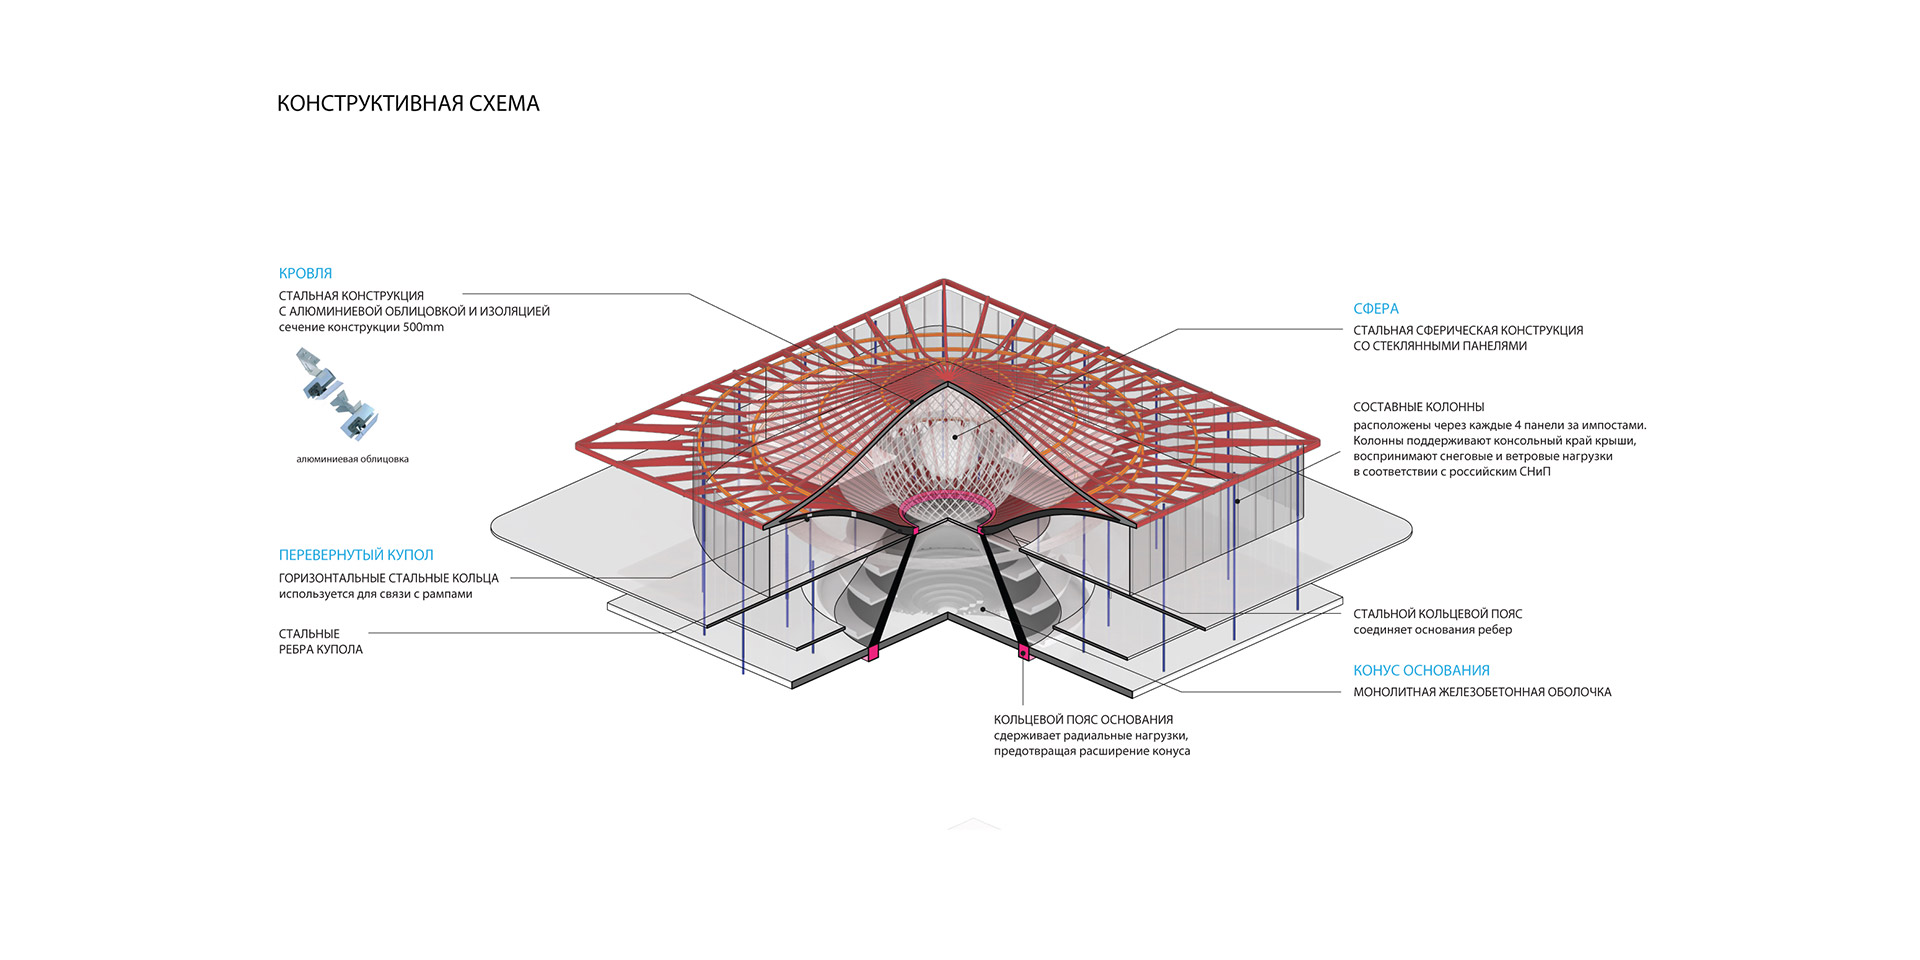 Concept of Nuclear Power Pavilion at VDNKh